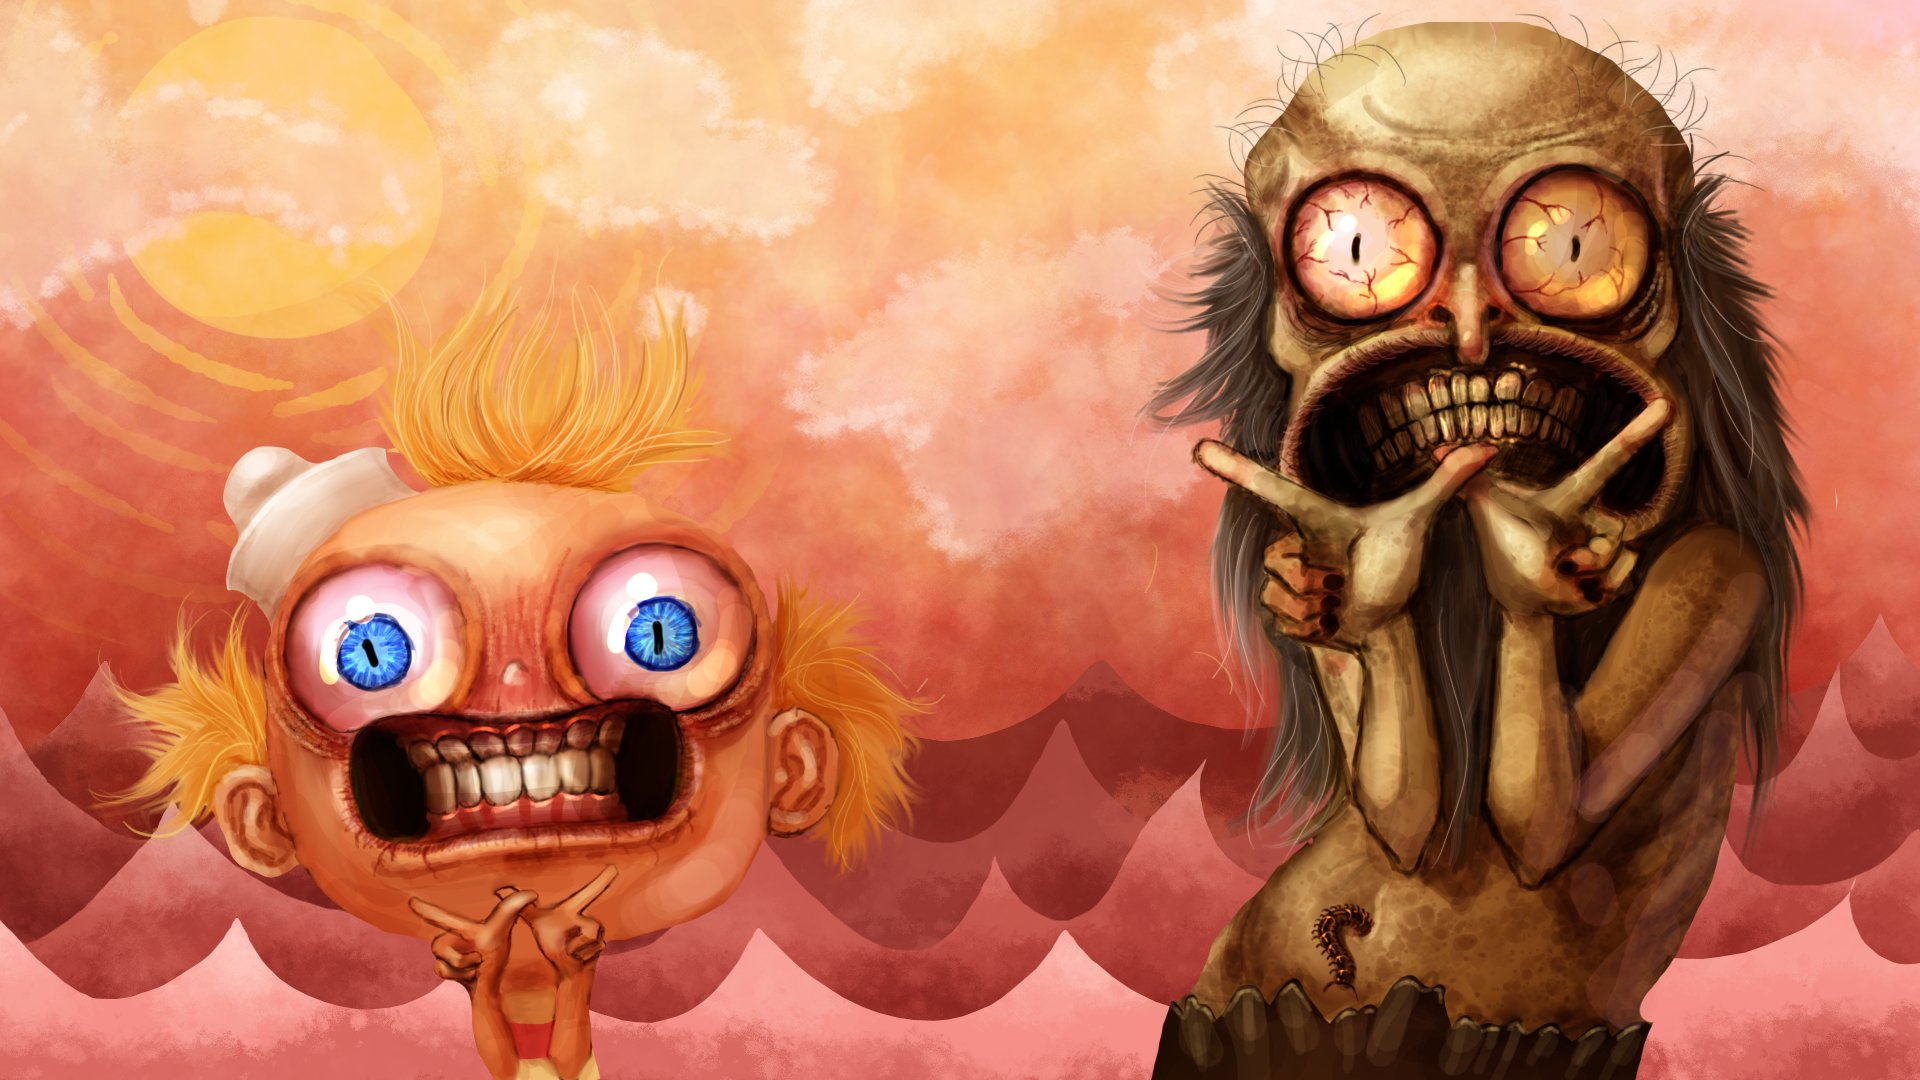 Televisieprogramma - The Marvelous Misadventures Of Flapjack  Zombie Horror Griezelig Oog Surreal Wallpaper